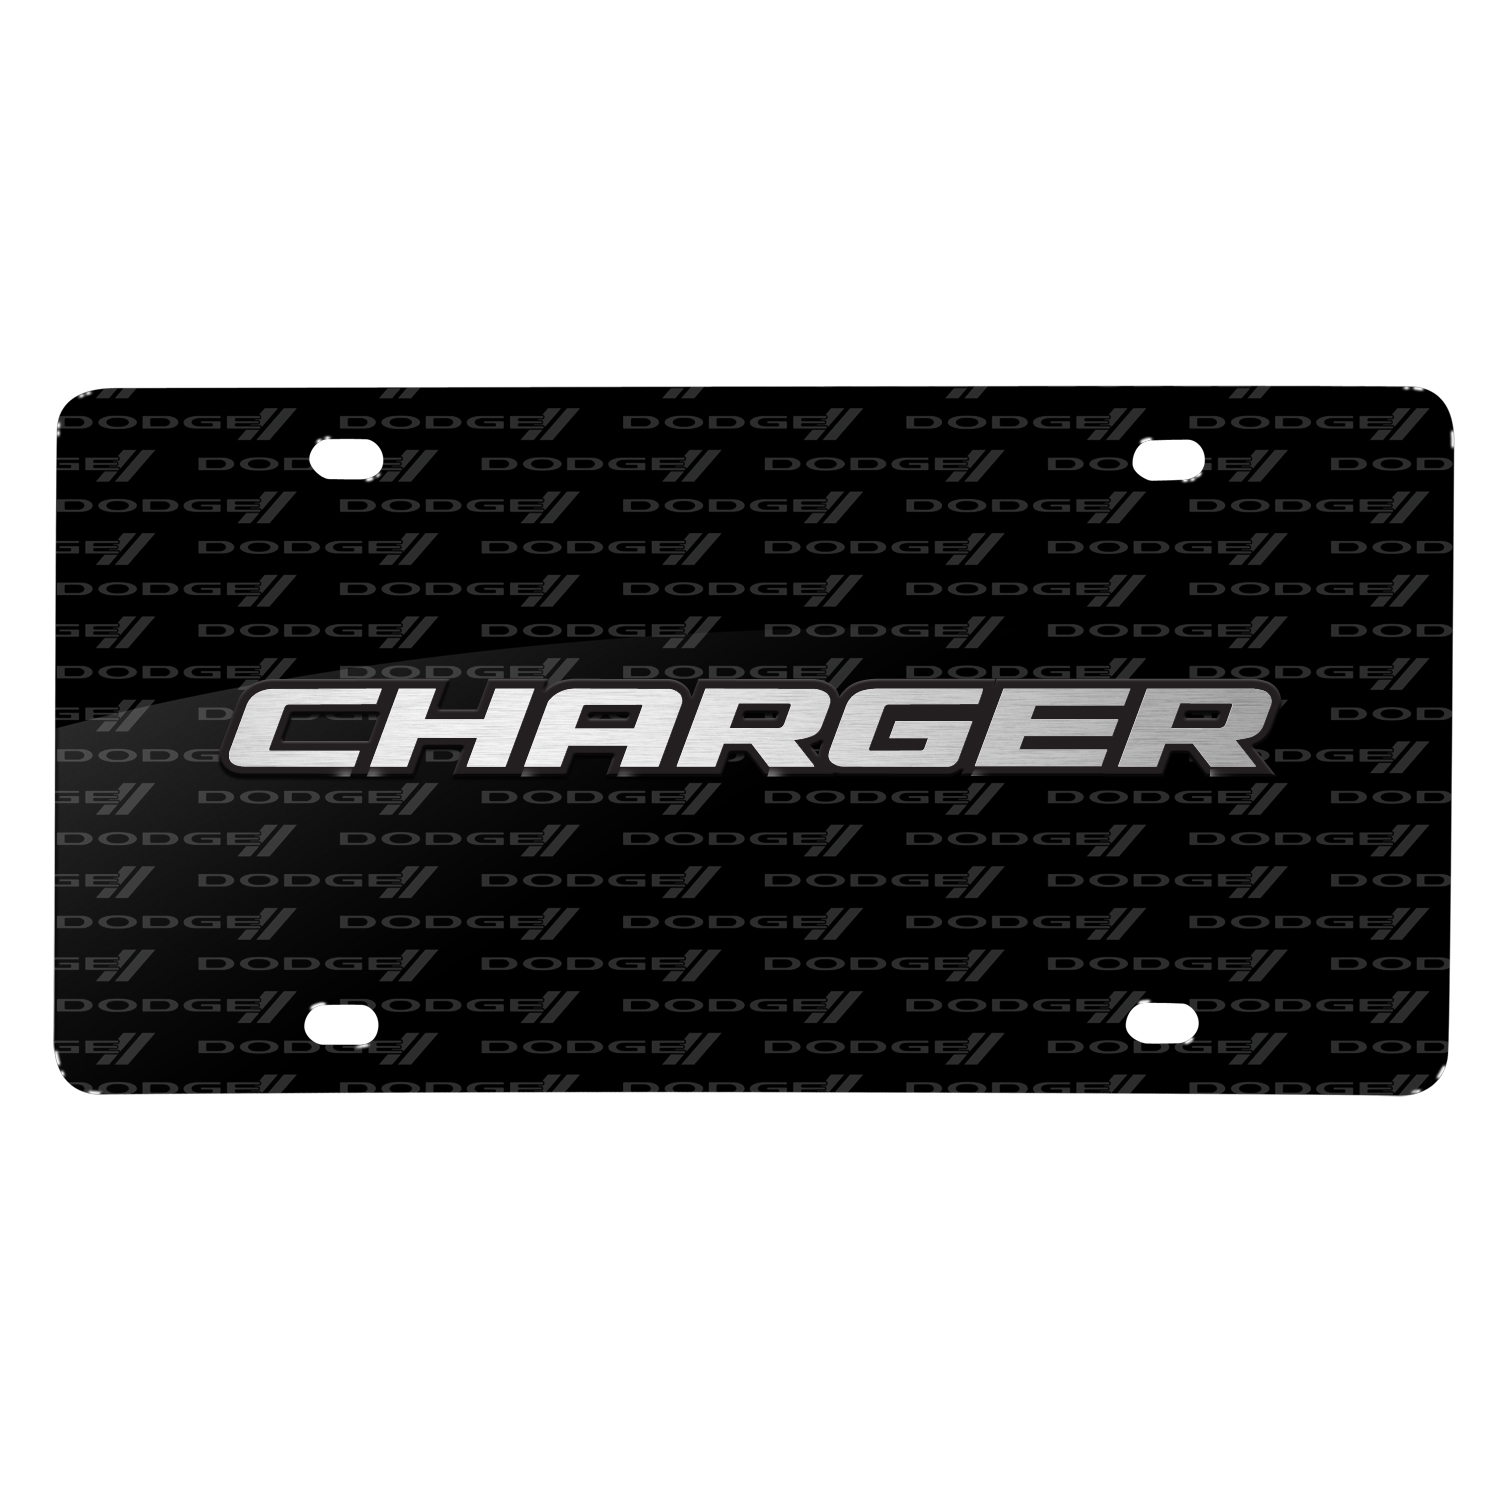 Dodge Charger 3D Logo on Logo Pattern Black Aluminum License Plate